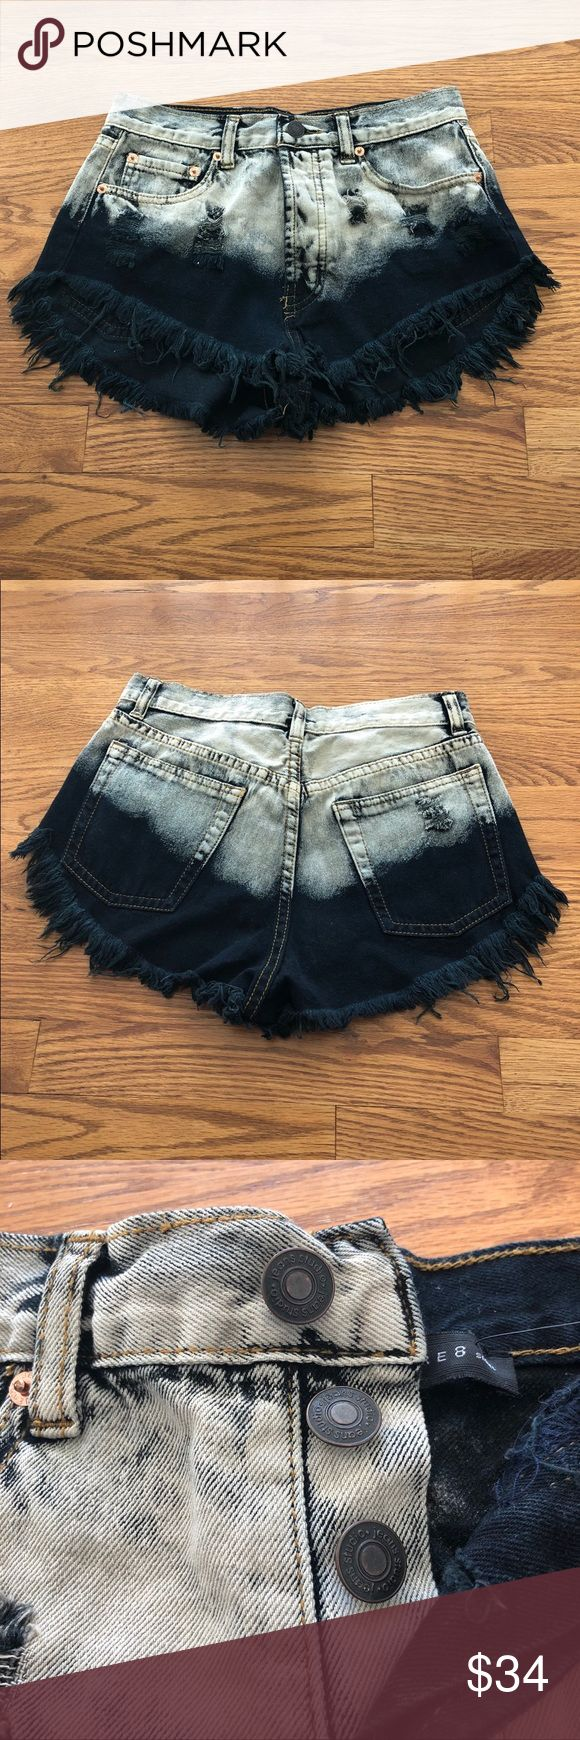 Signature 8 Dip Dye Denim Shorts Brand New. Signature 8 High Rise Denim Dip Dye Shorts with button up fly. Size Small. Pairs really well with a crop top! Signature 8 Shorts Jean Shorts